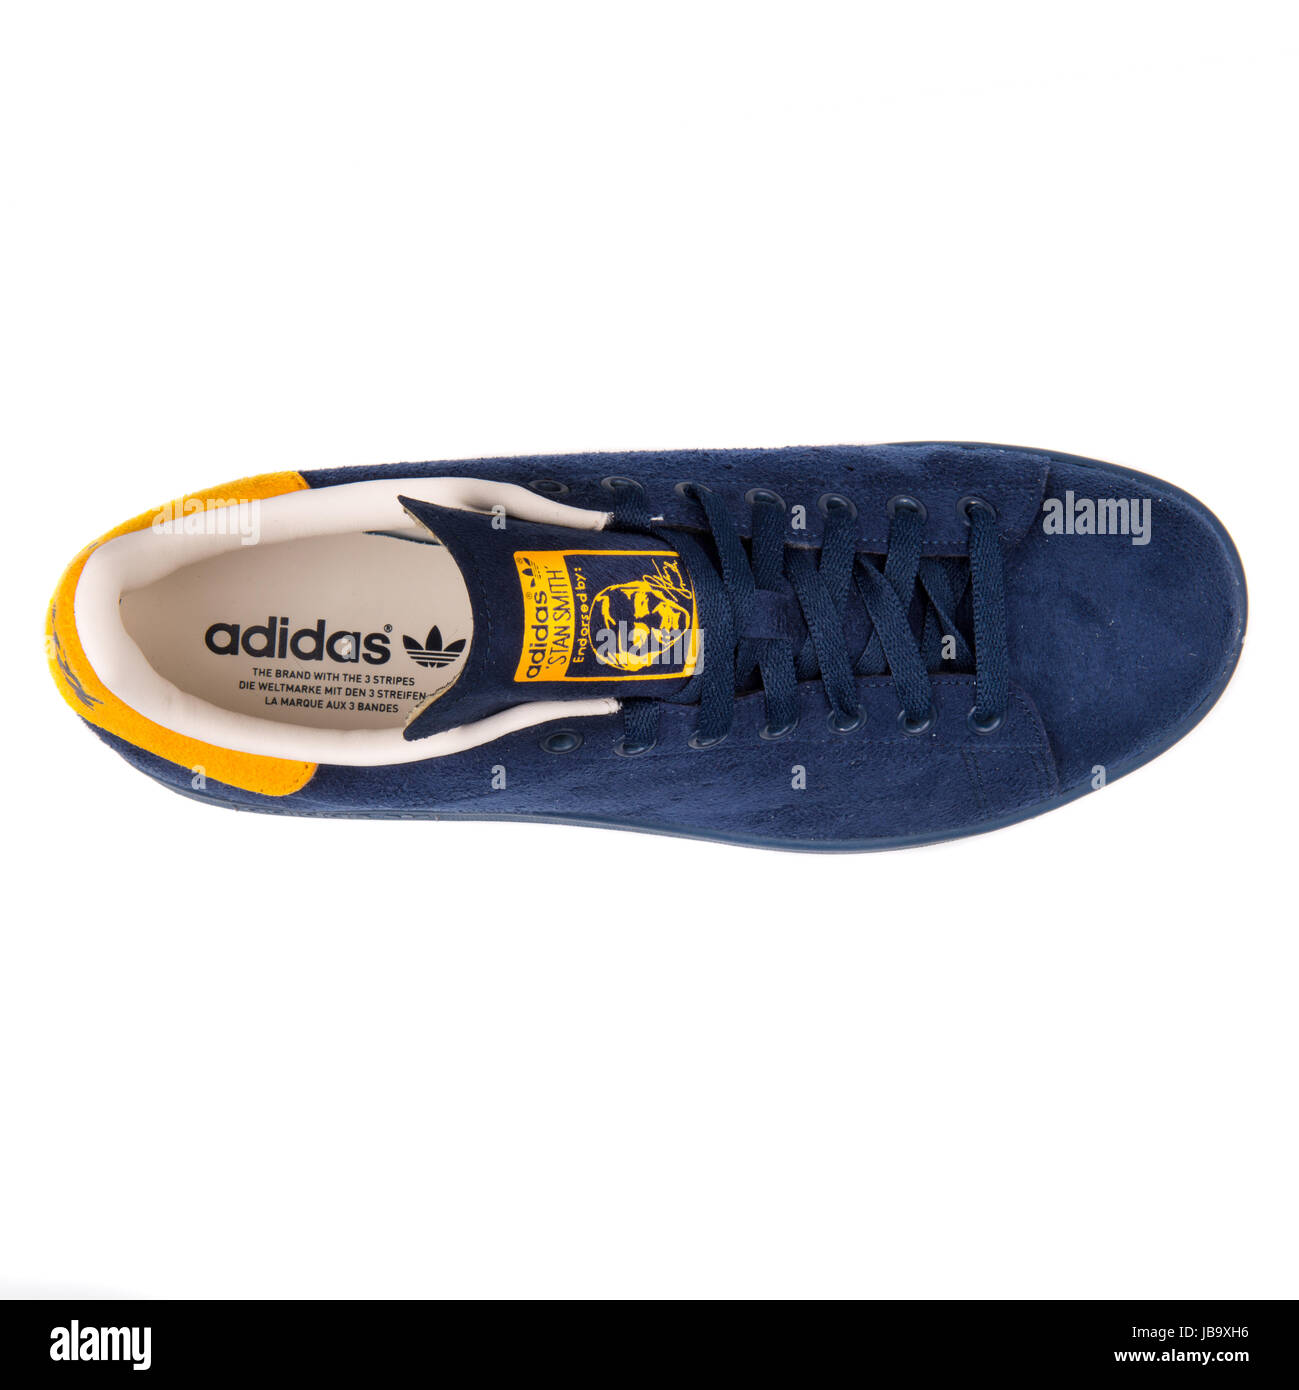 low priced 10d67 ce70e Adidas Stan Smith Navy Blue and Yellow Men s Sports Shoes - B24707 - Stock  Image